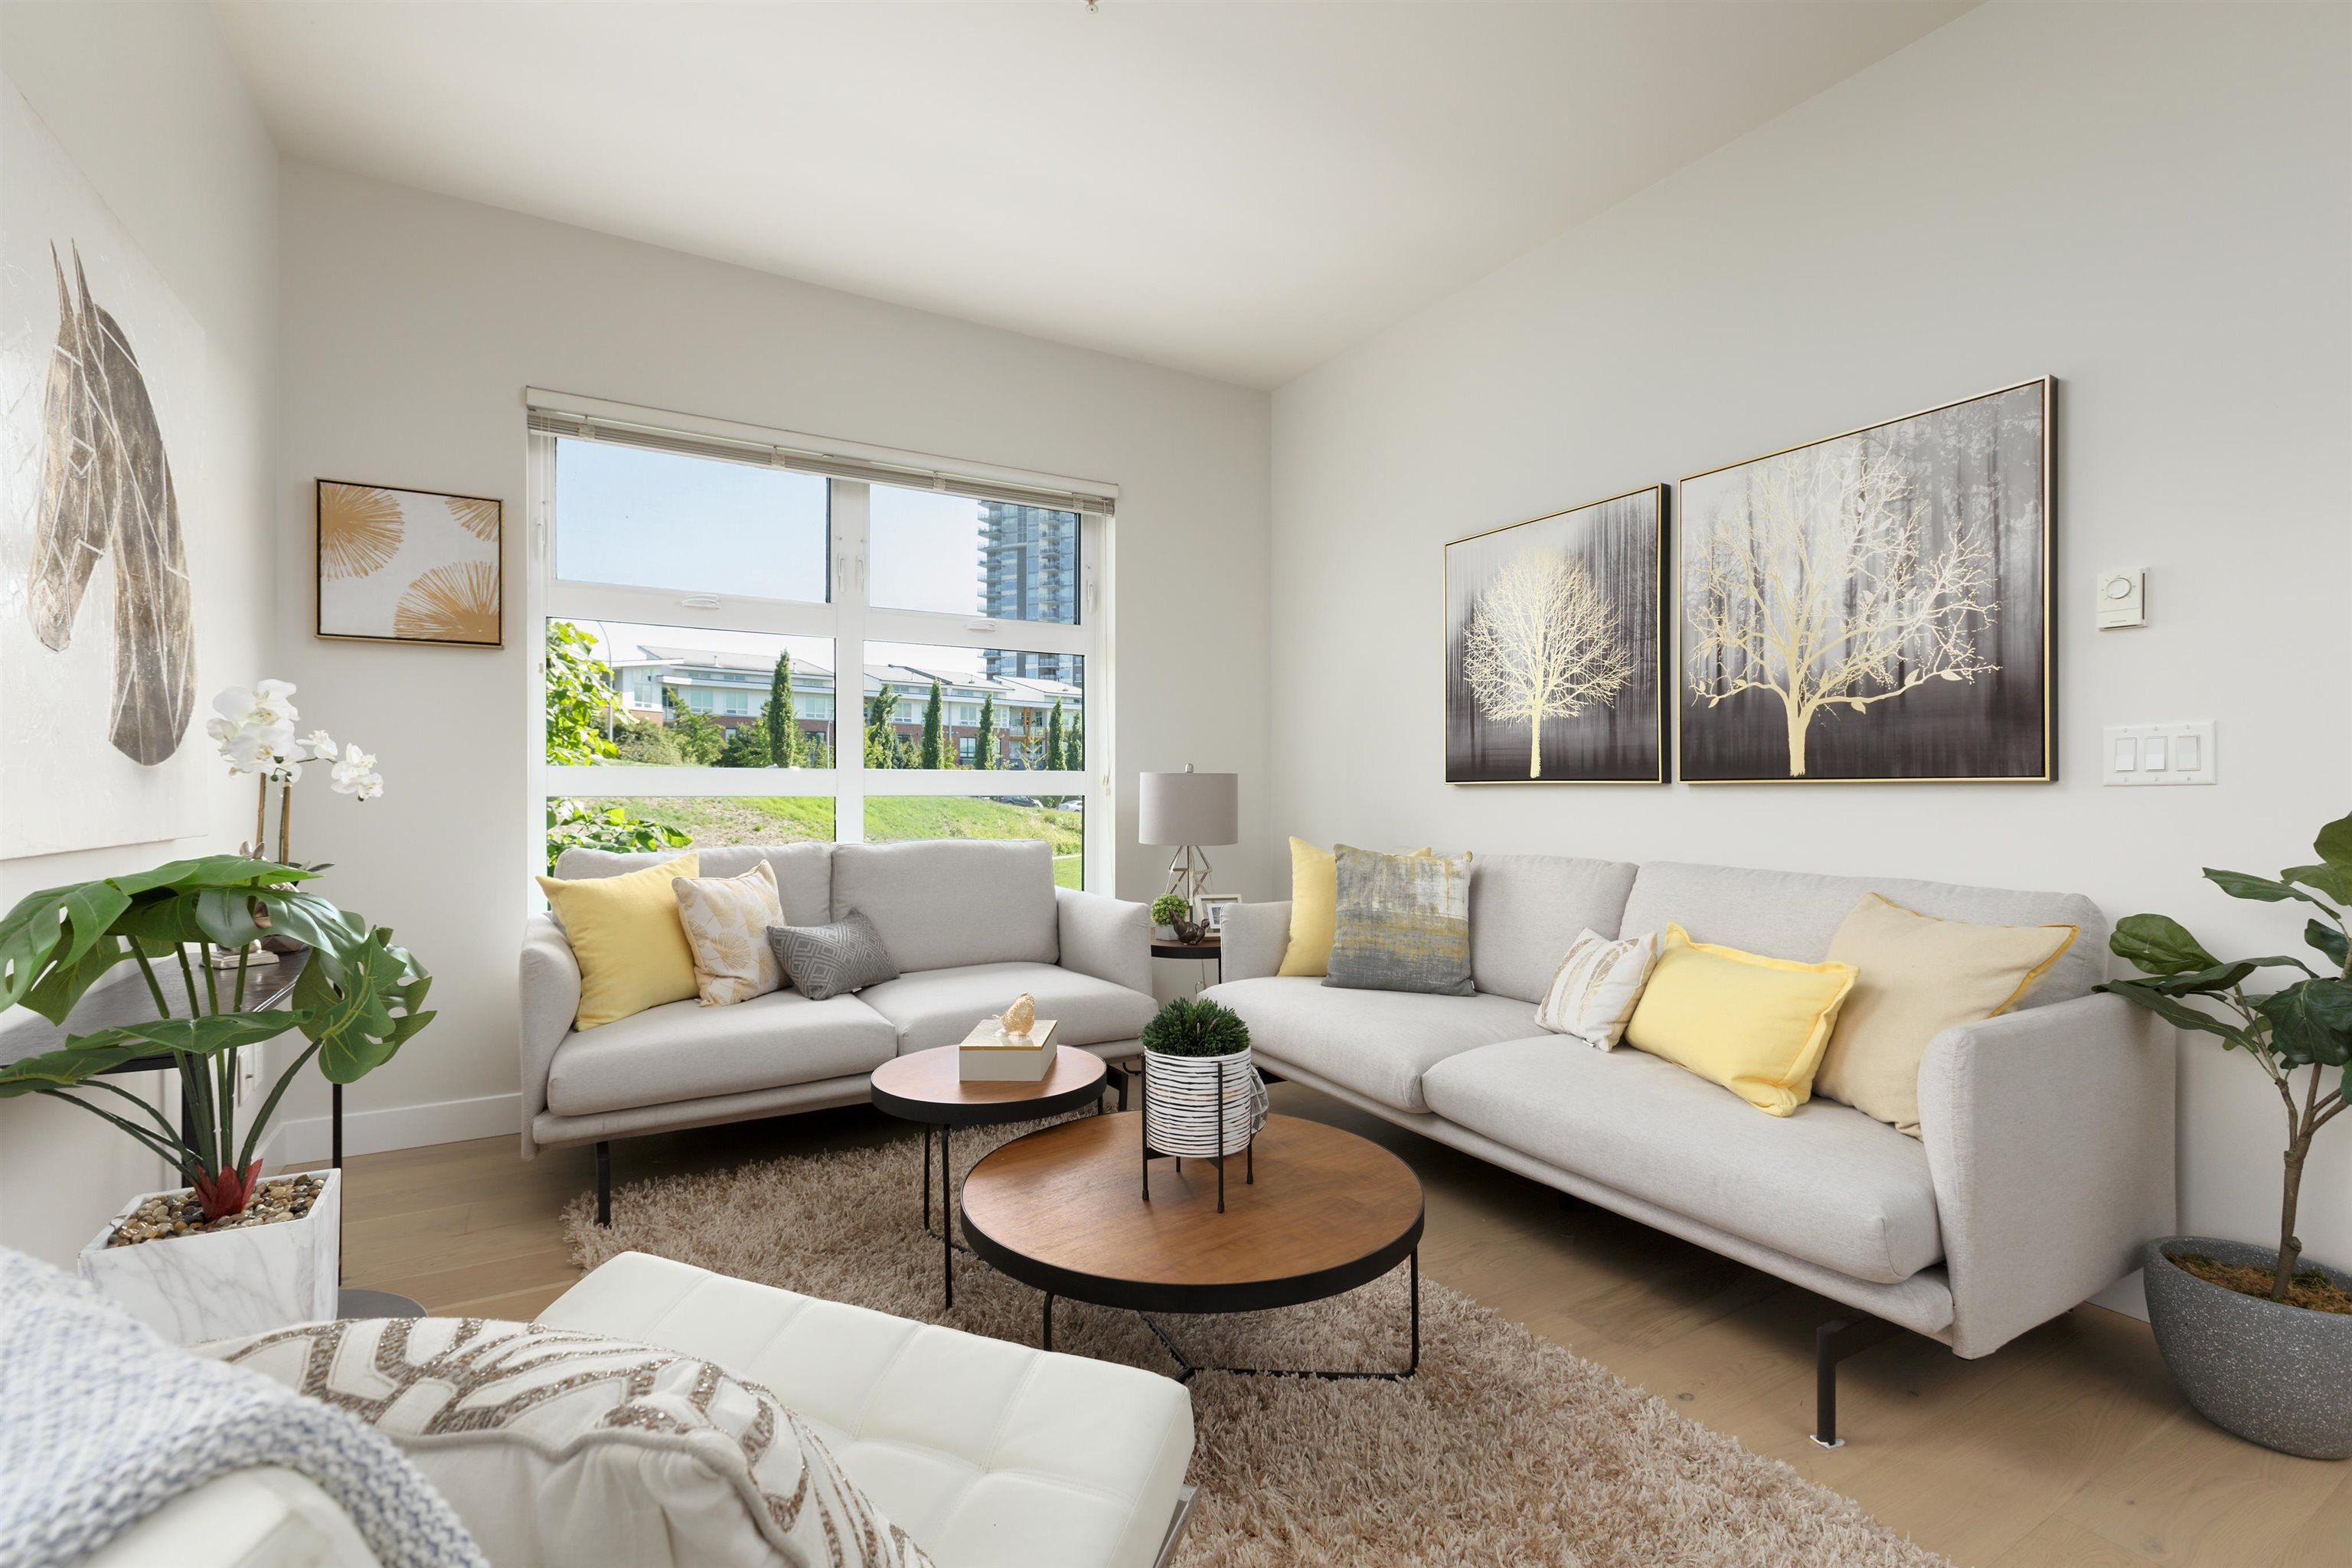 Enjoy the view of the neighboring park from the window in this spacious living room.